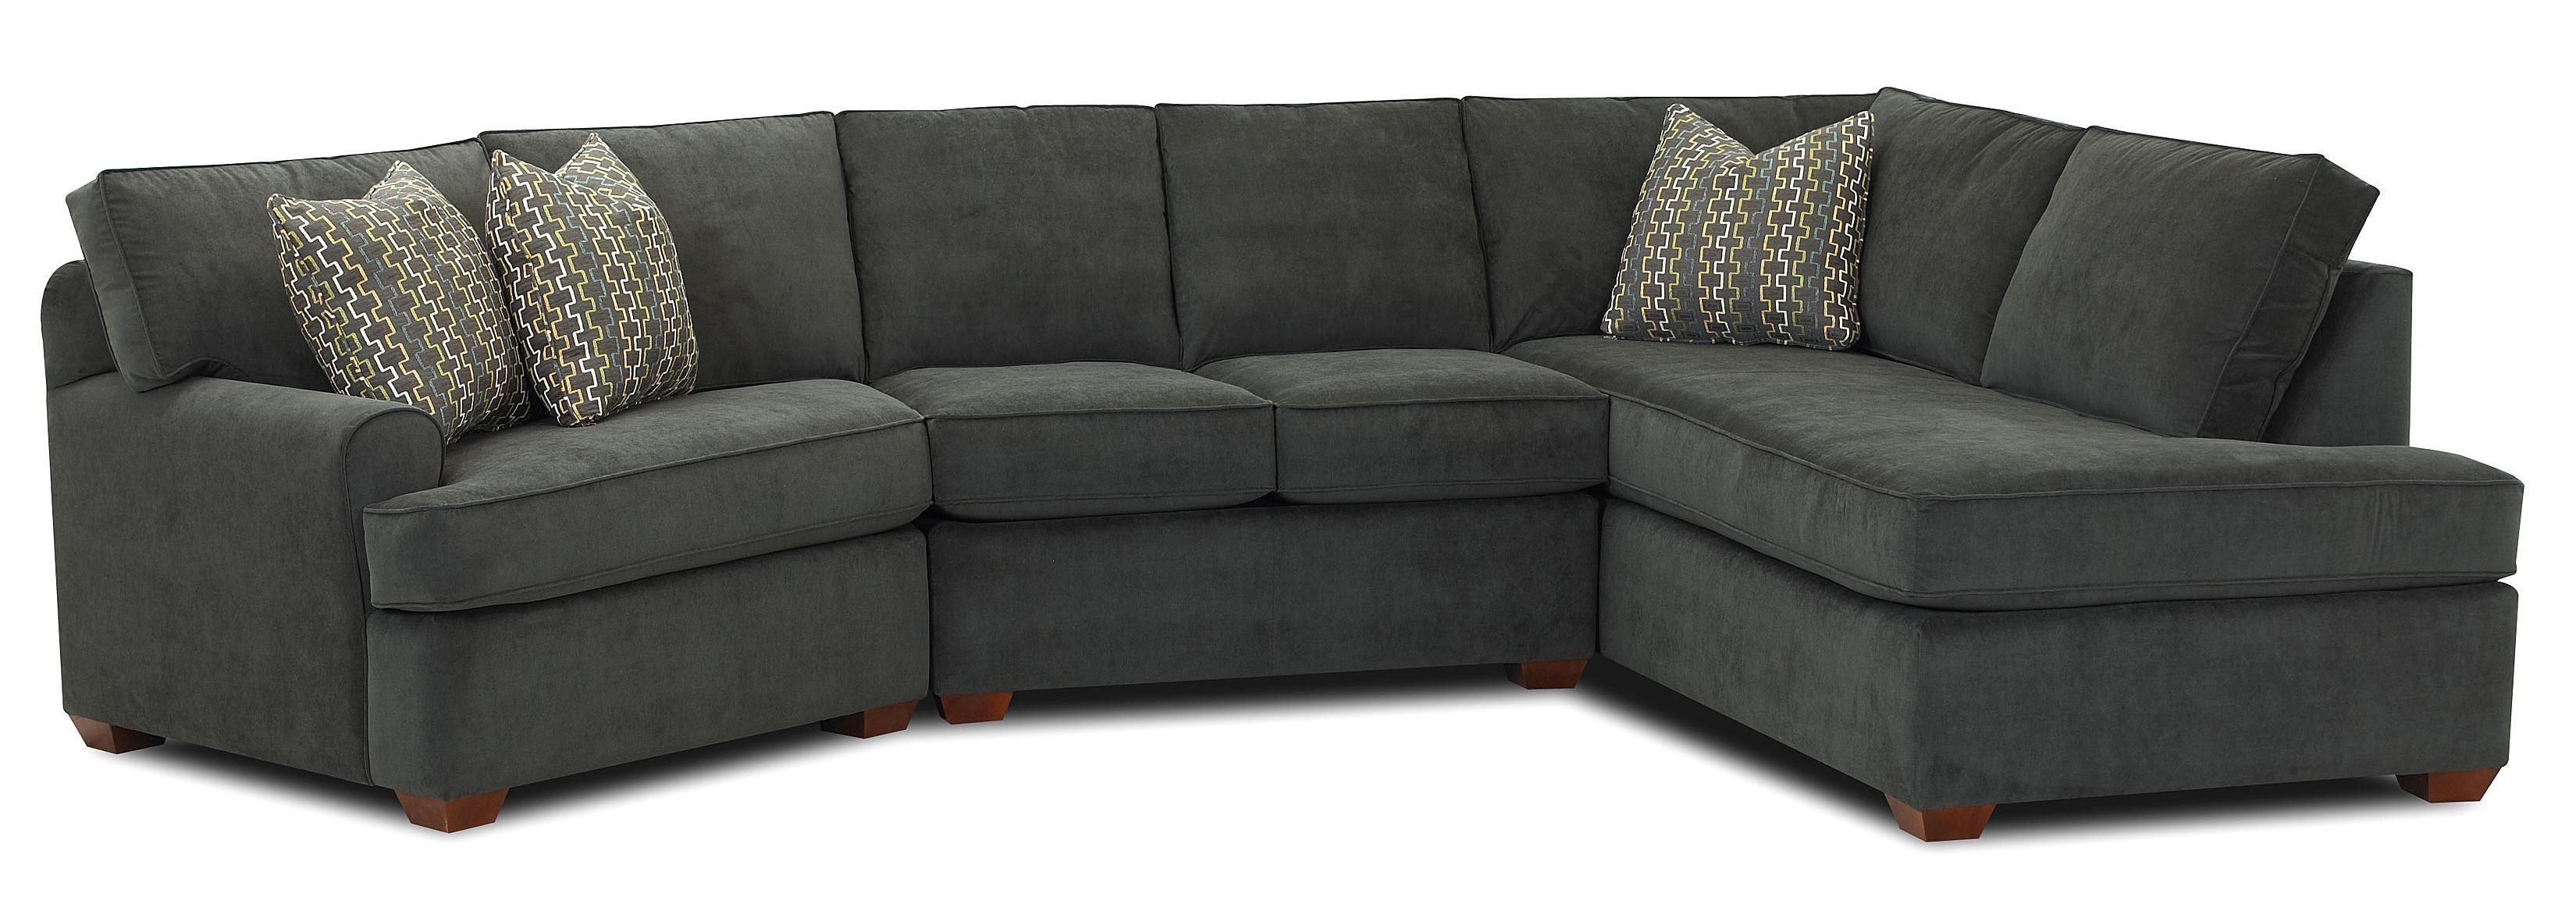 Chaise Sectional Sofa | Tehranmix Decoration Throughout Green Sectional Sofa With Chaise (Image 3 of 15)